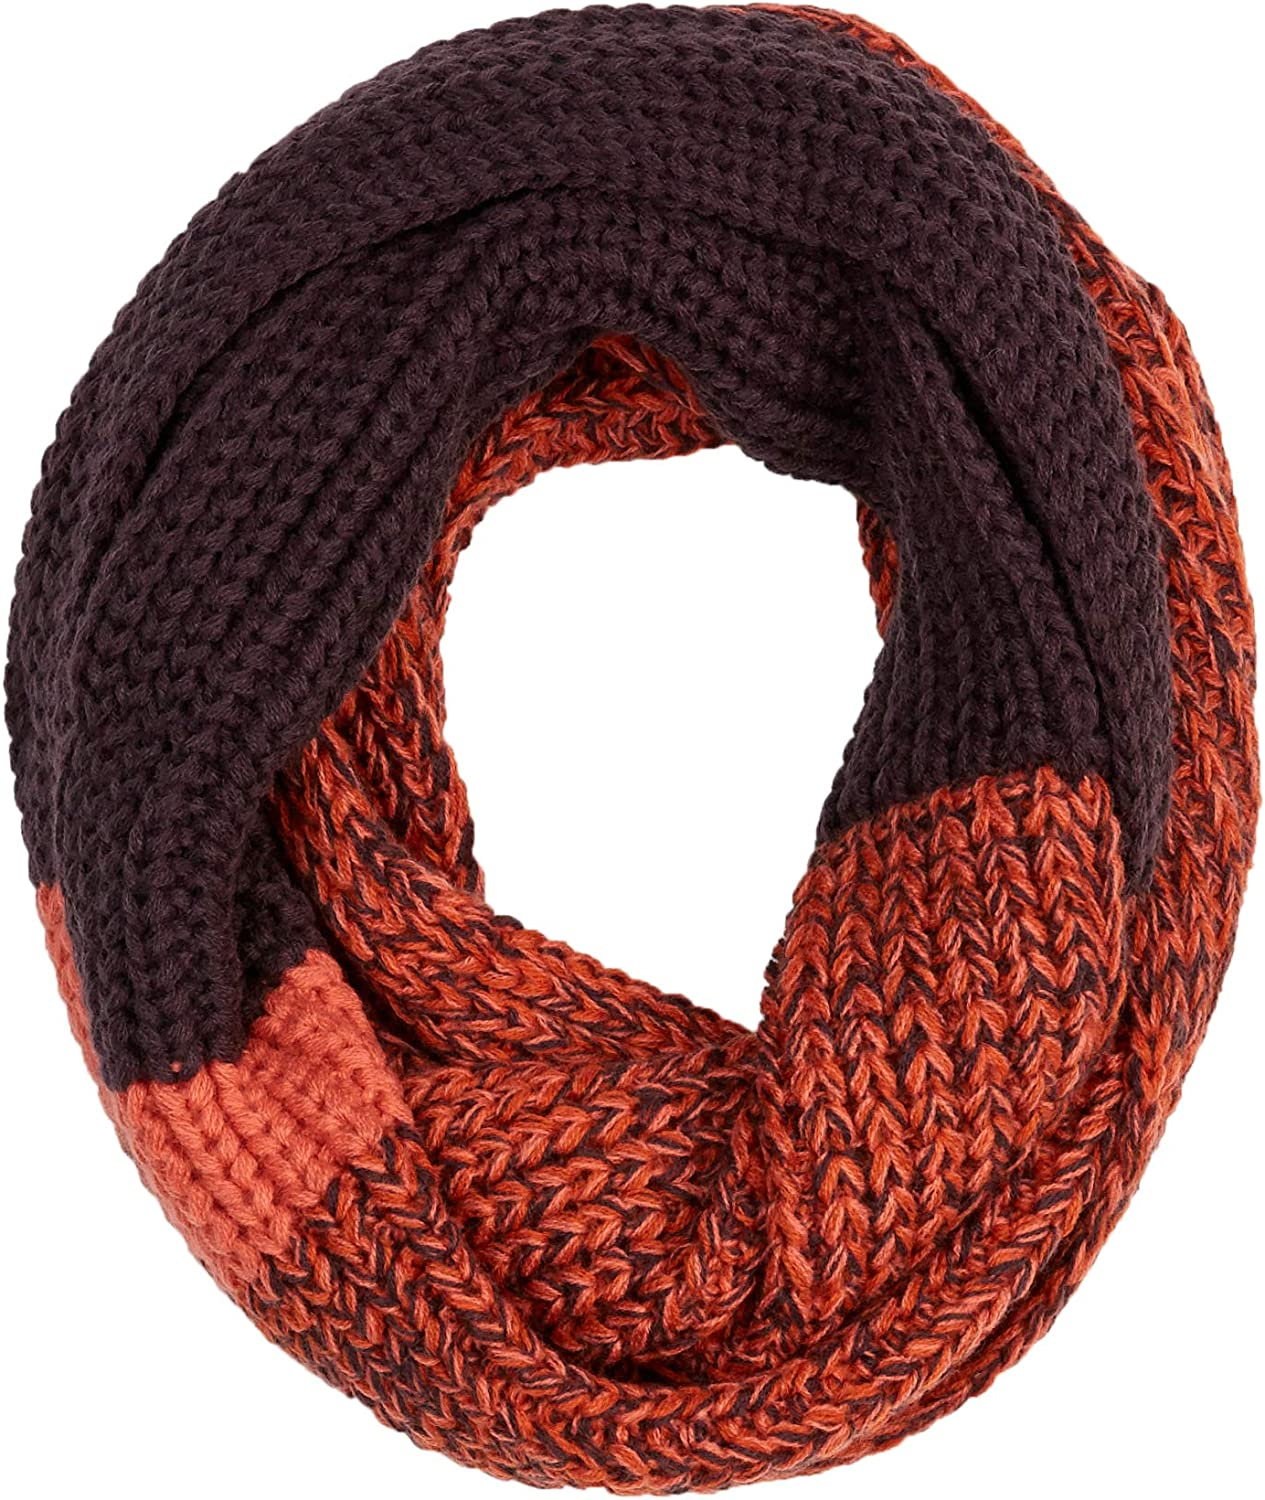 UNDER ZERO Women's Winter Ribbed Limited time sale Quantity limited Scarf Purp Knit Orange Infinity